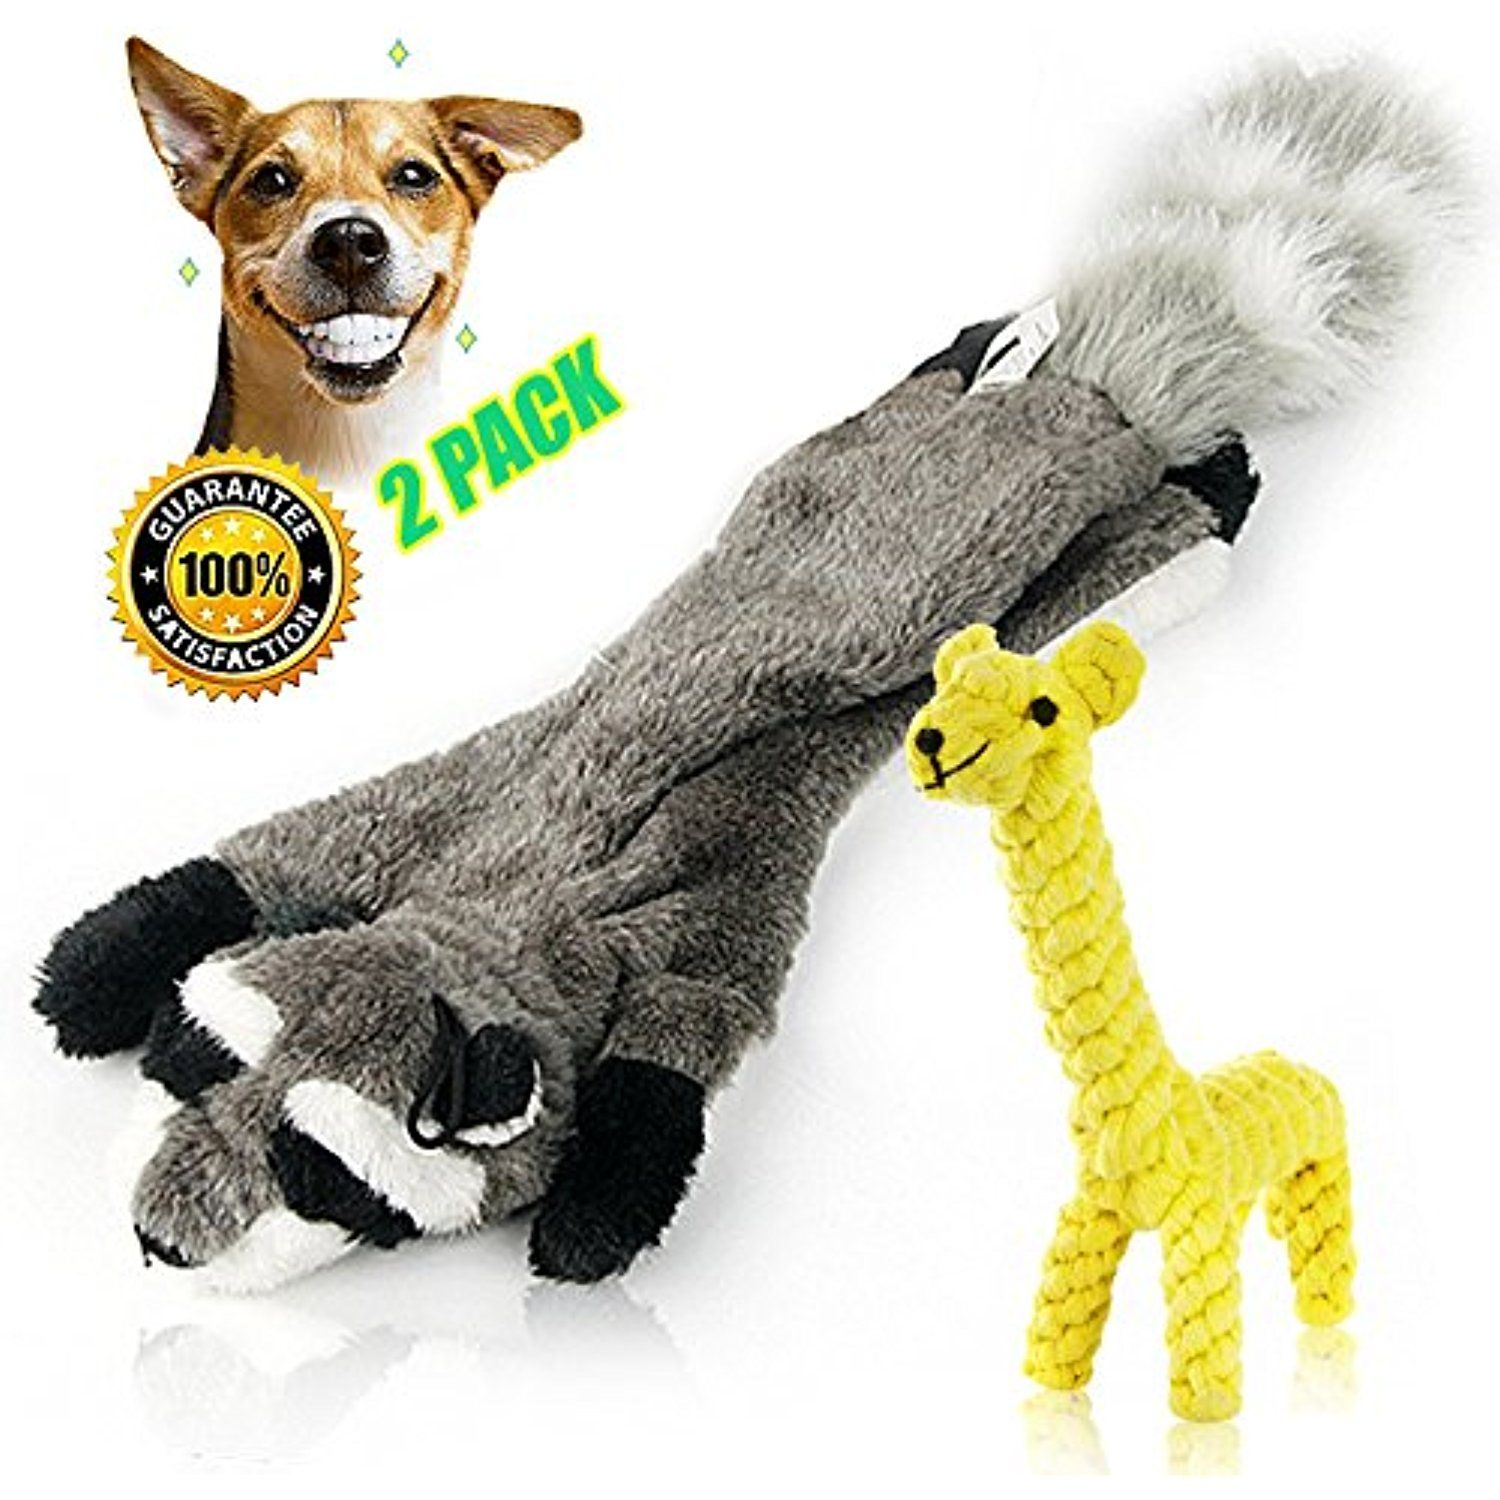 Skinny Peltz No Stuffing Raccoon Squeaky Plush Dog Toy and Giraffe ... | Dog Toys Without Stuffing